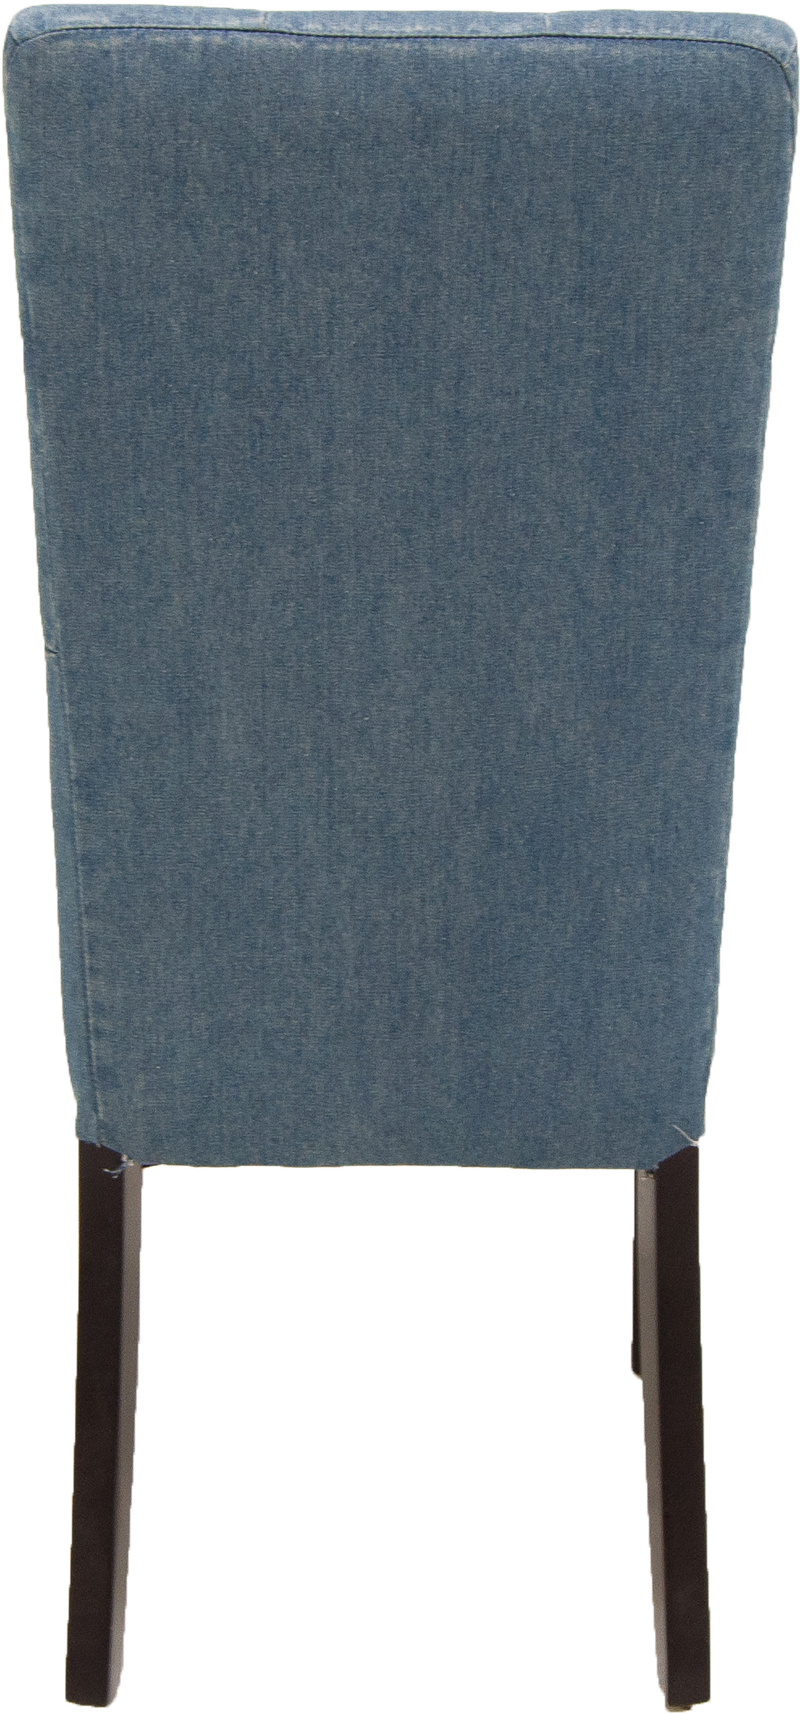 CORNERSTONE HOME INTERIORS - MALONE DENIM DINING CHAIR